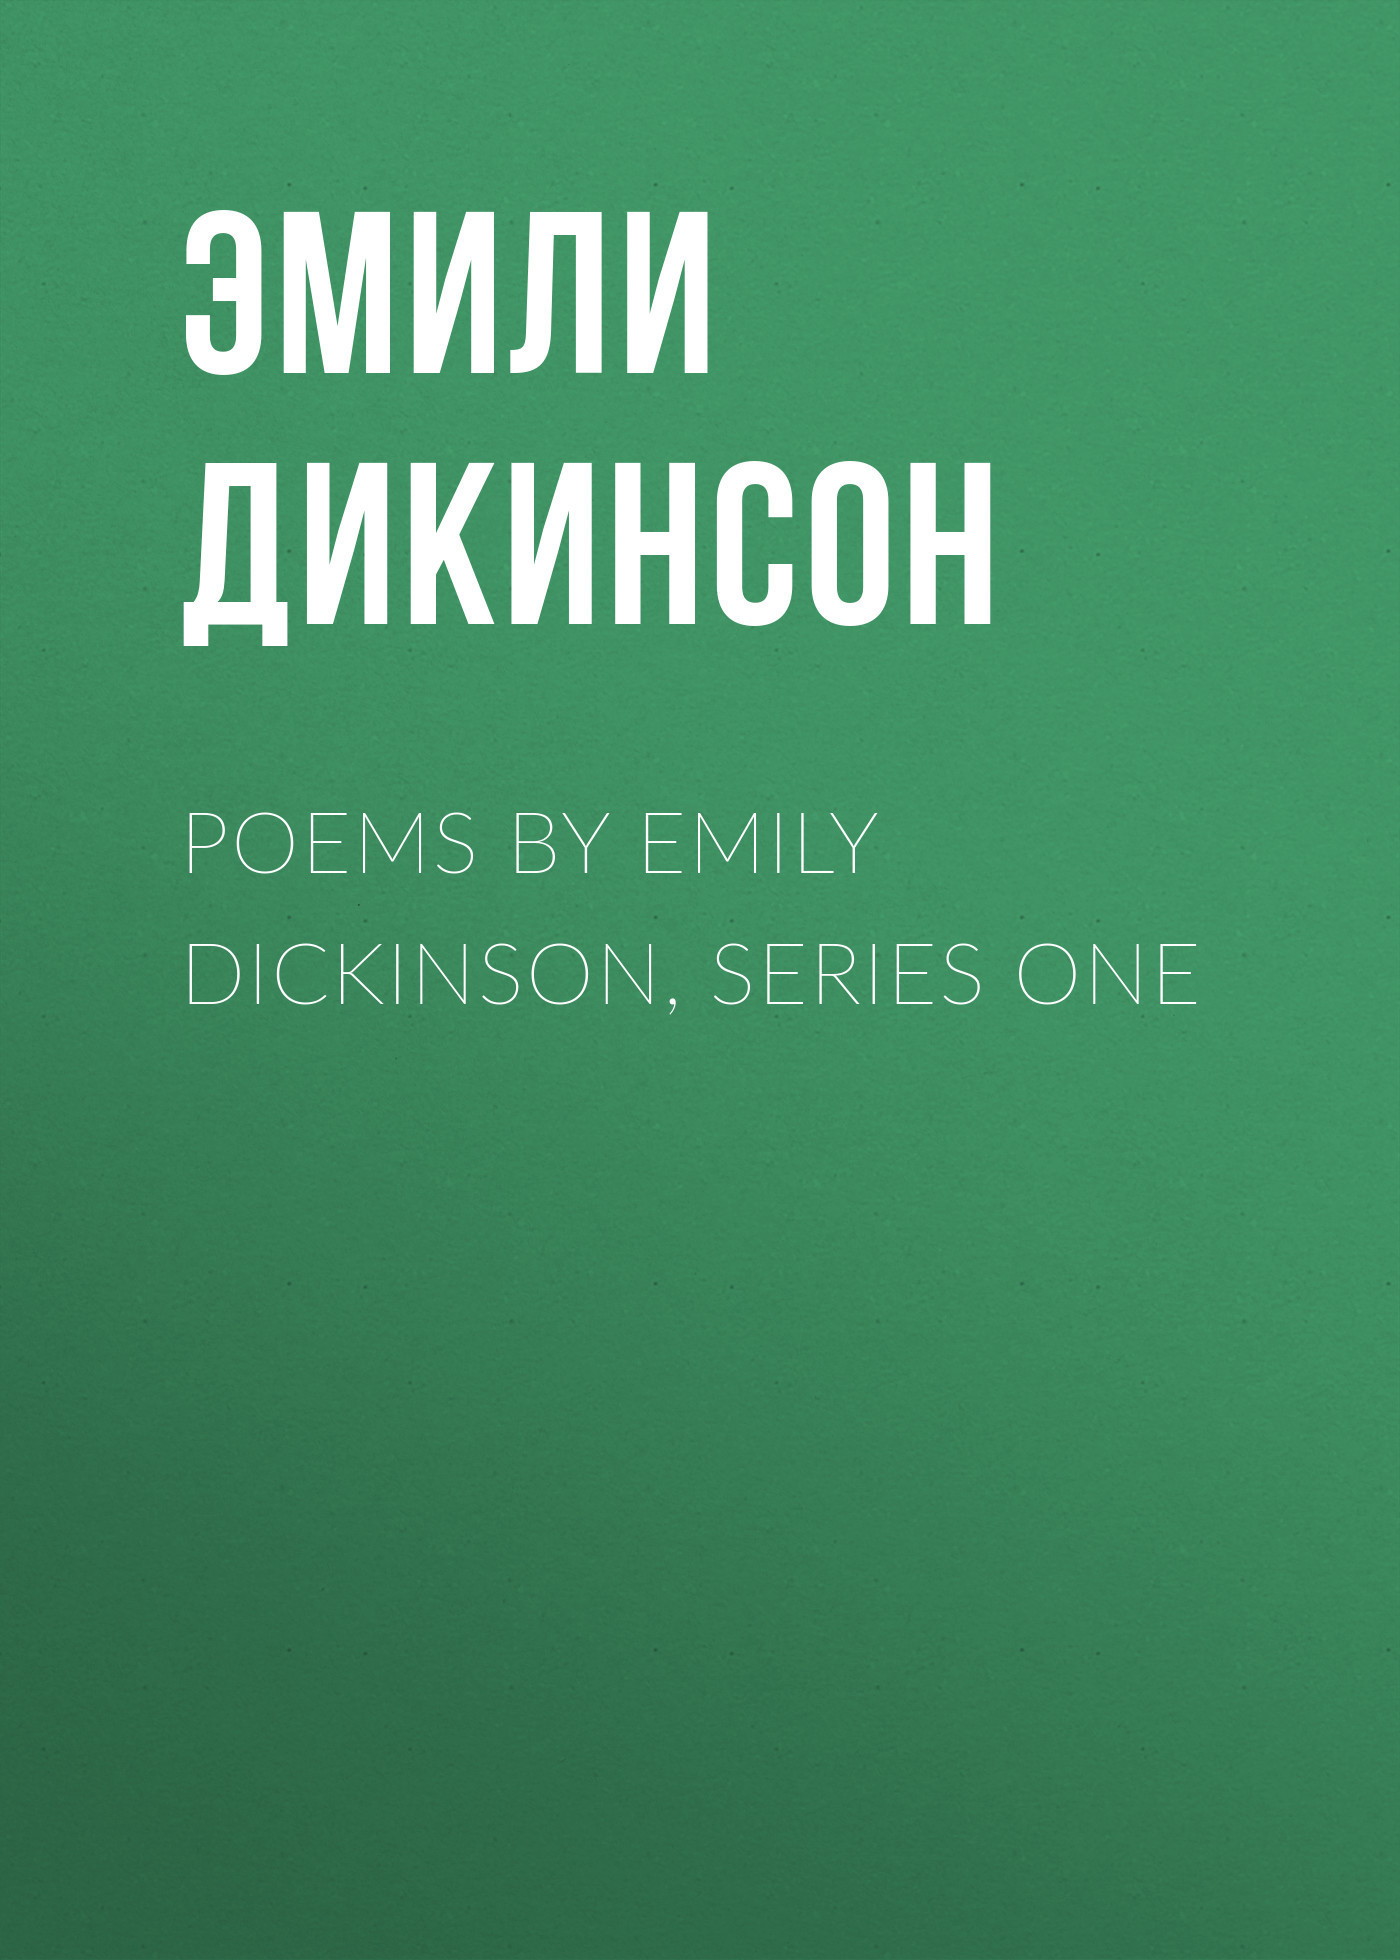 Эмили Дикинсон Poems by Emily Dickinson, Series One эмили дикинсон дорога в небо перевод с